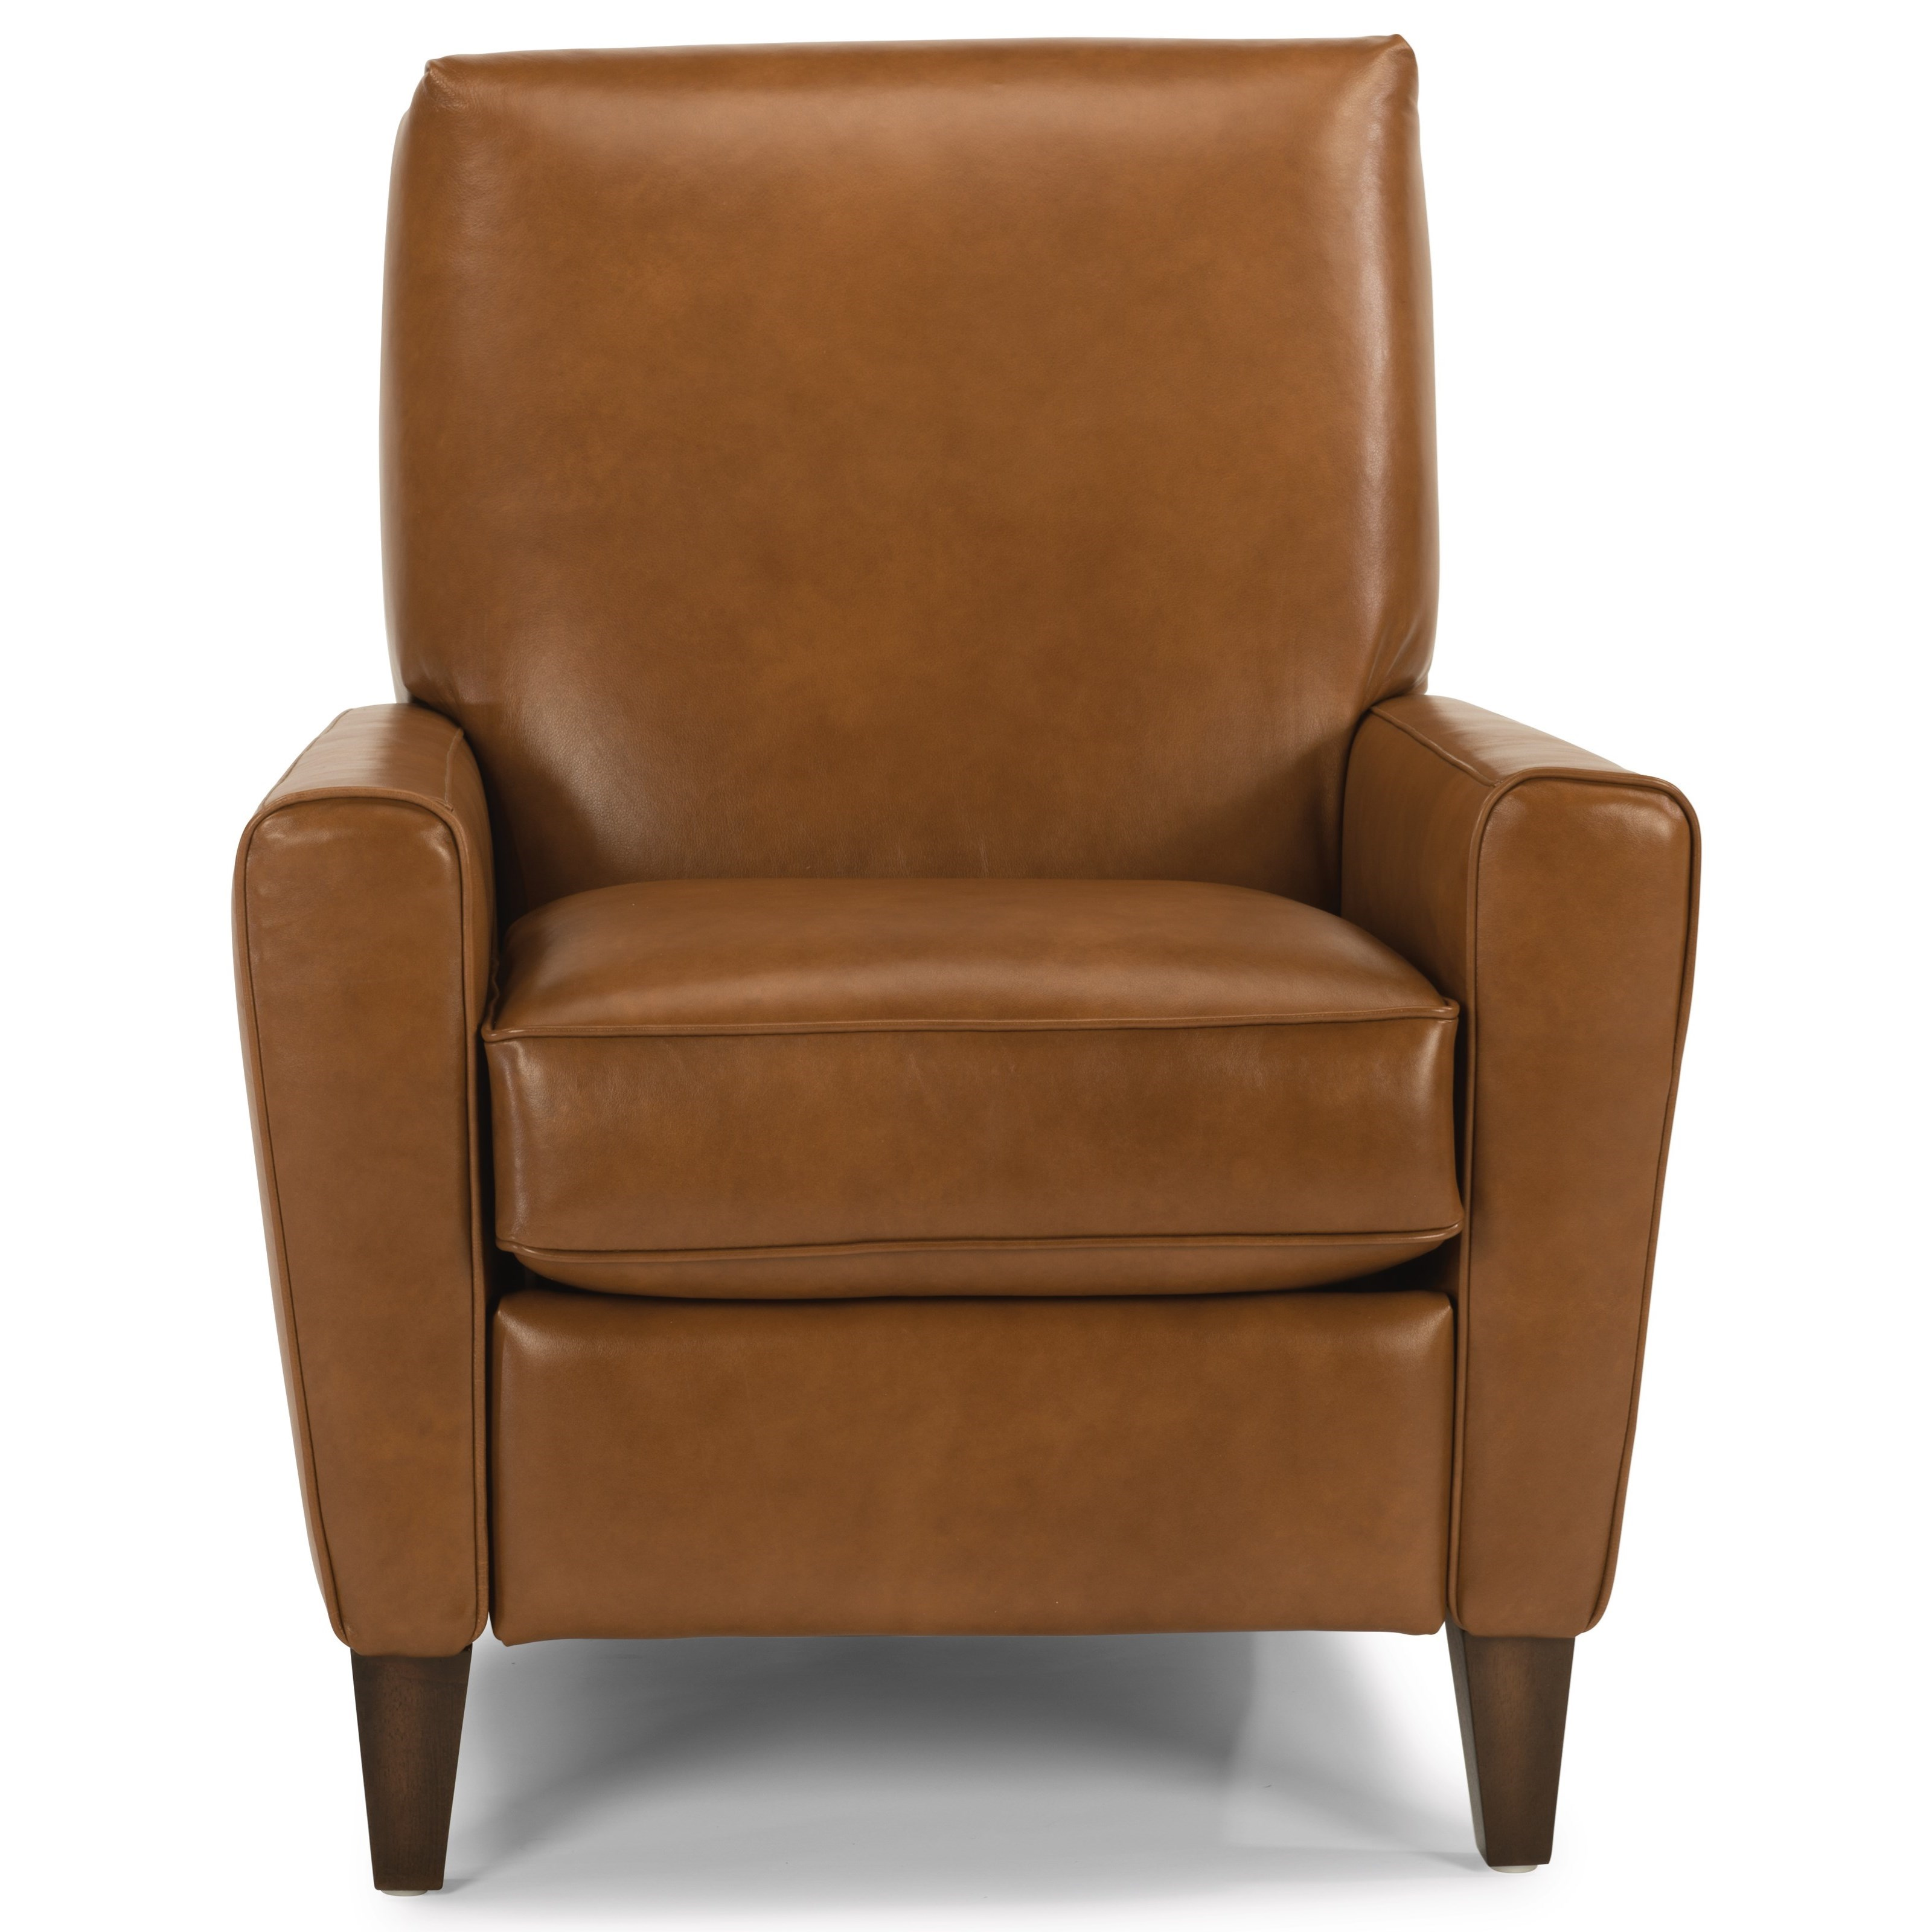 Flexsteel Digby High Leg Recliner   Item Number: 3966 50